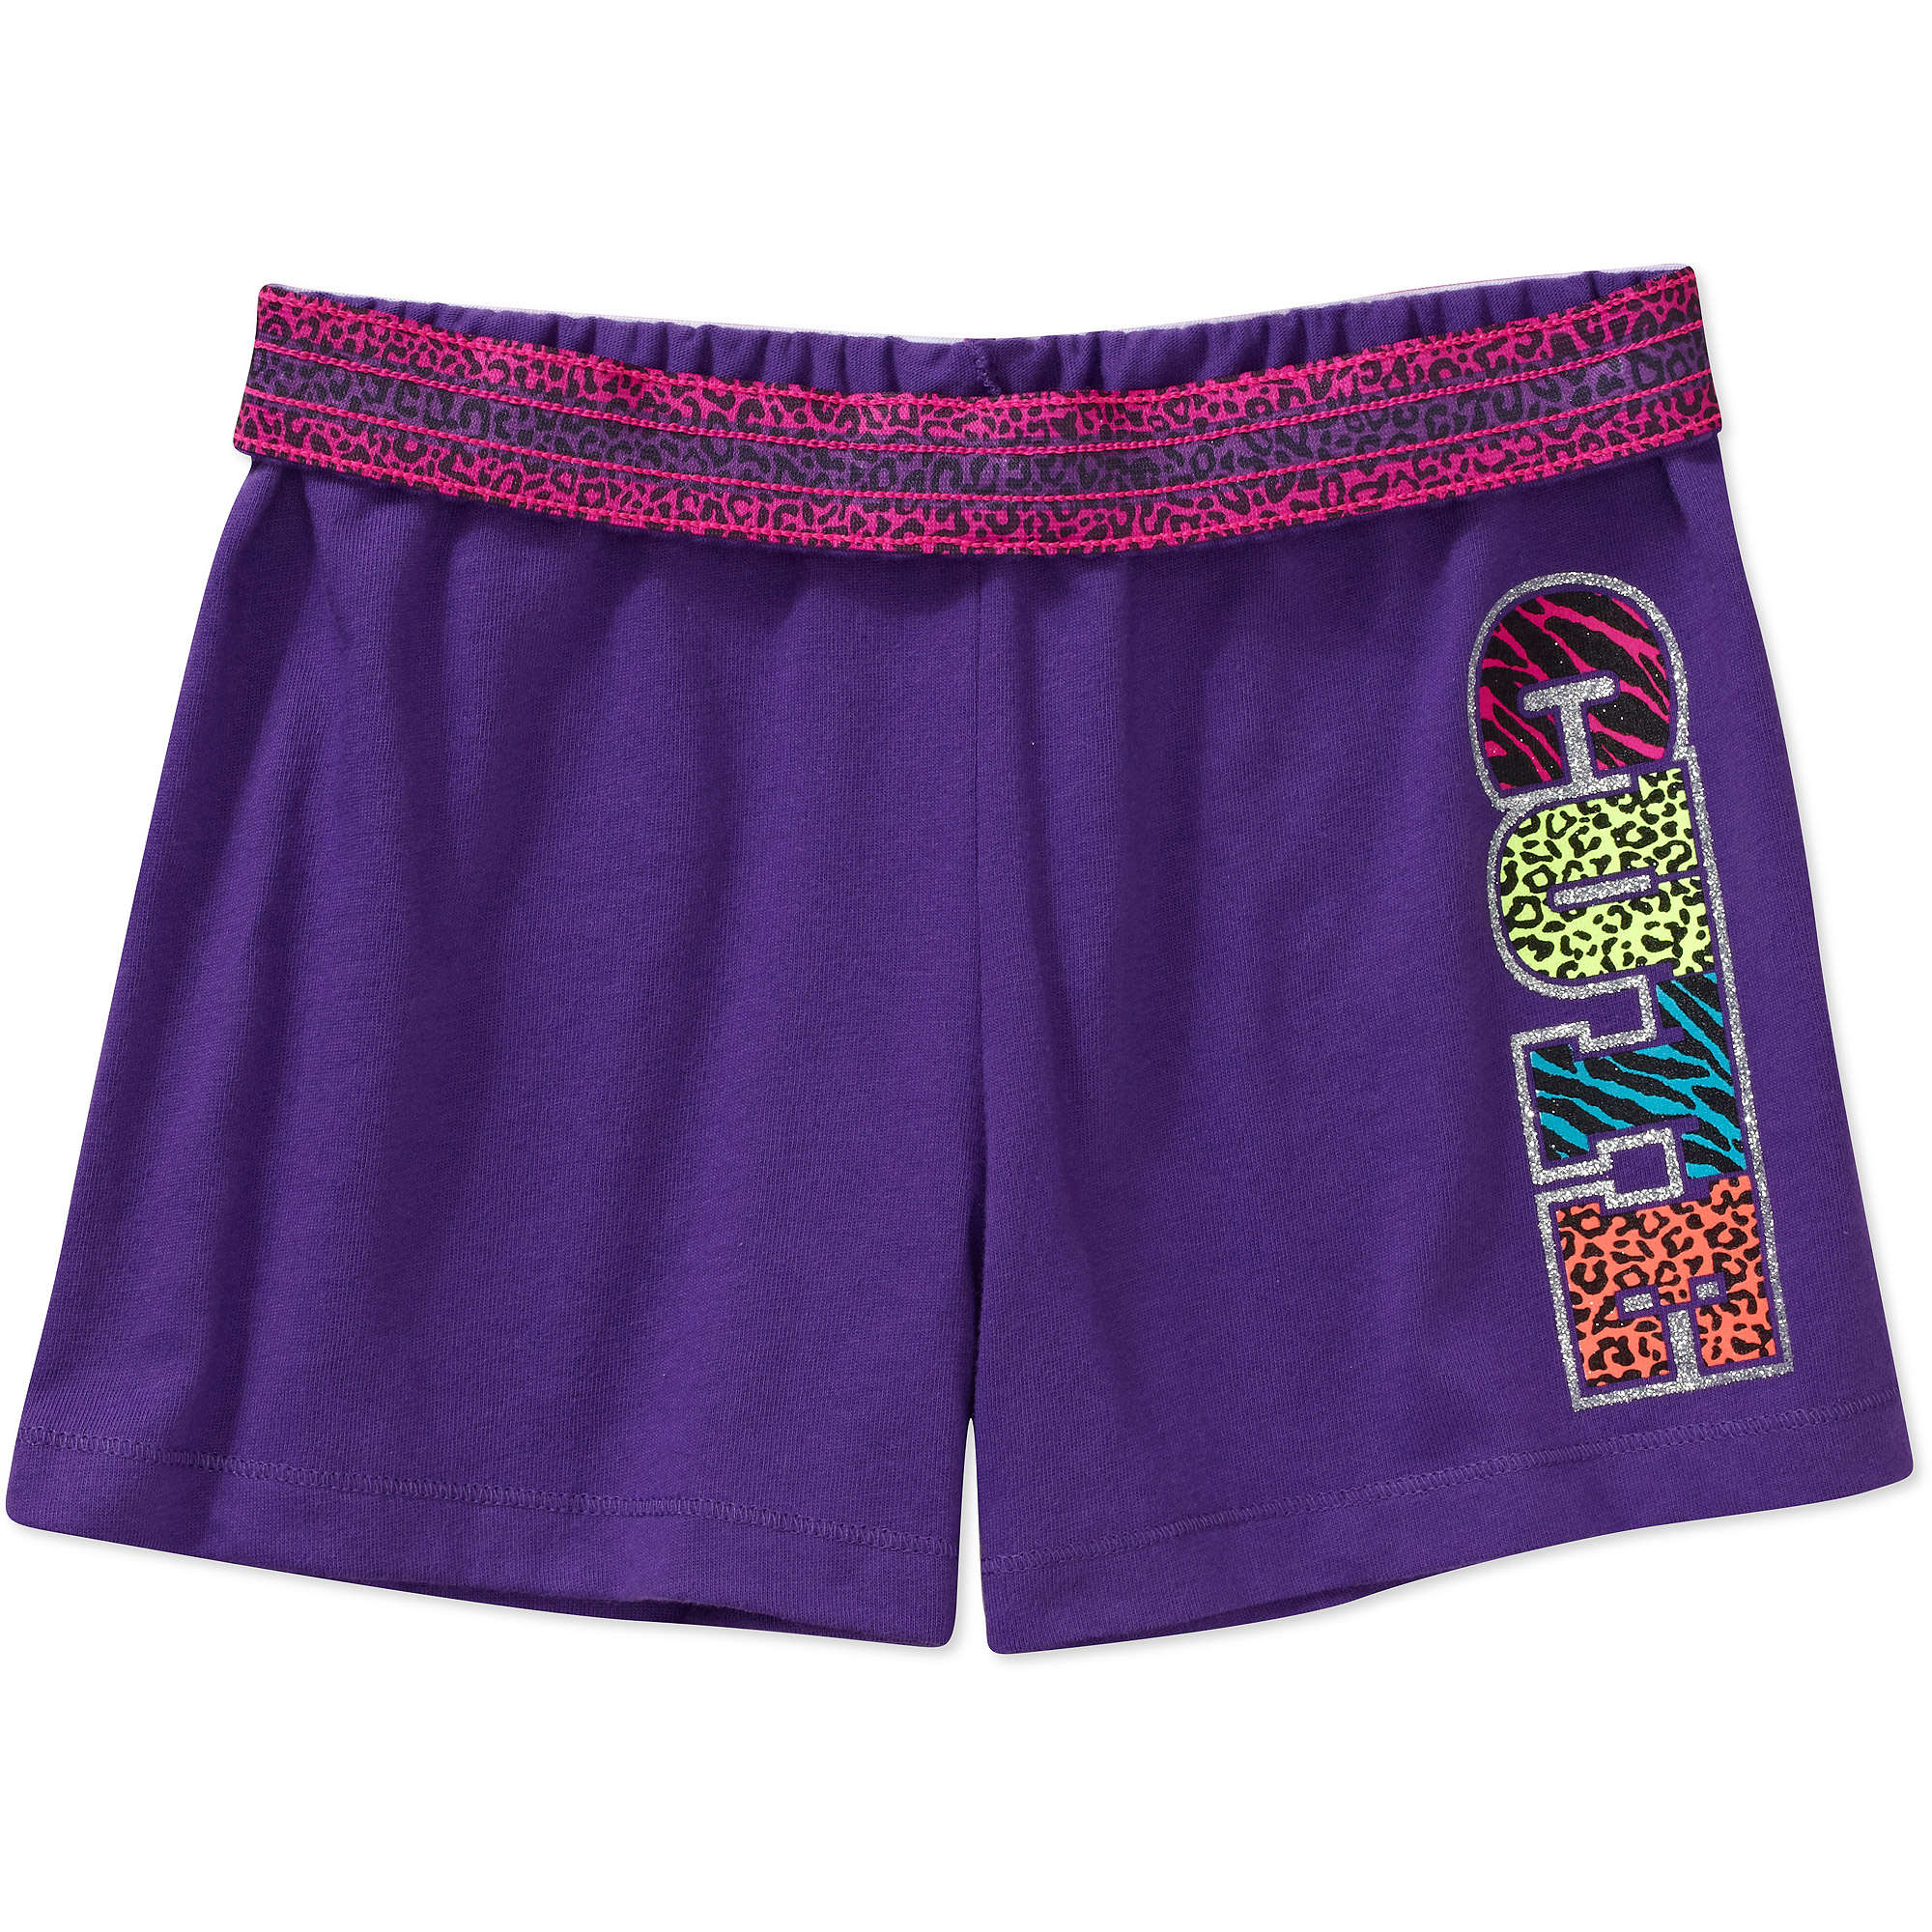 Faded Glory Girls' Mix and Match Short